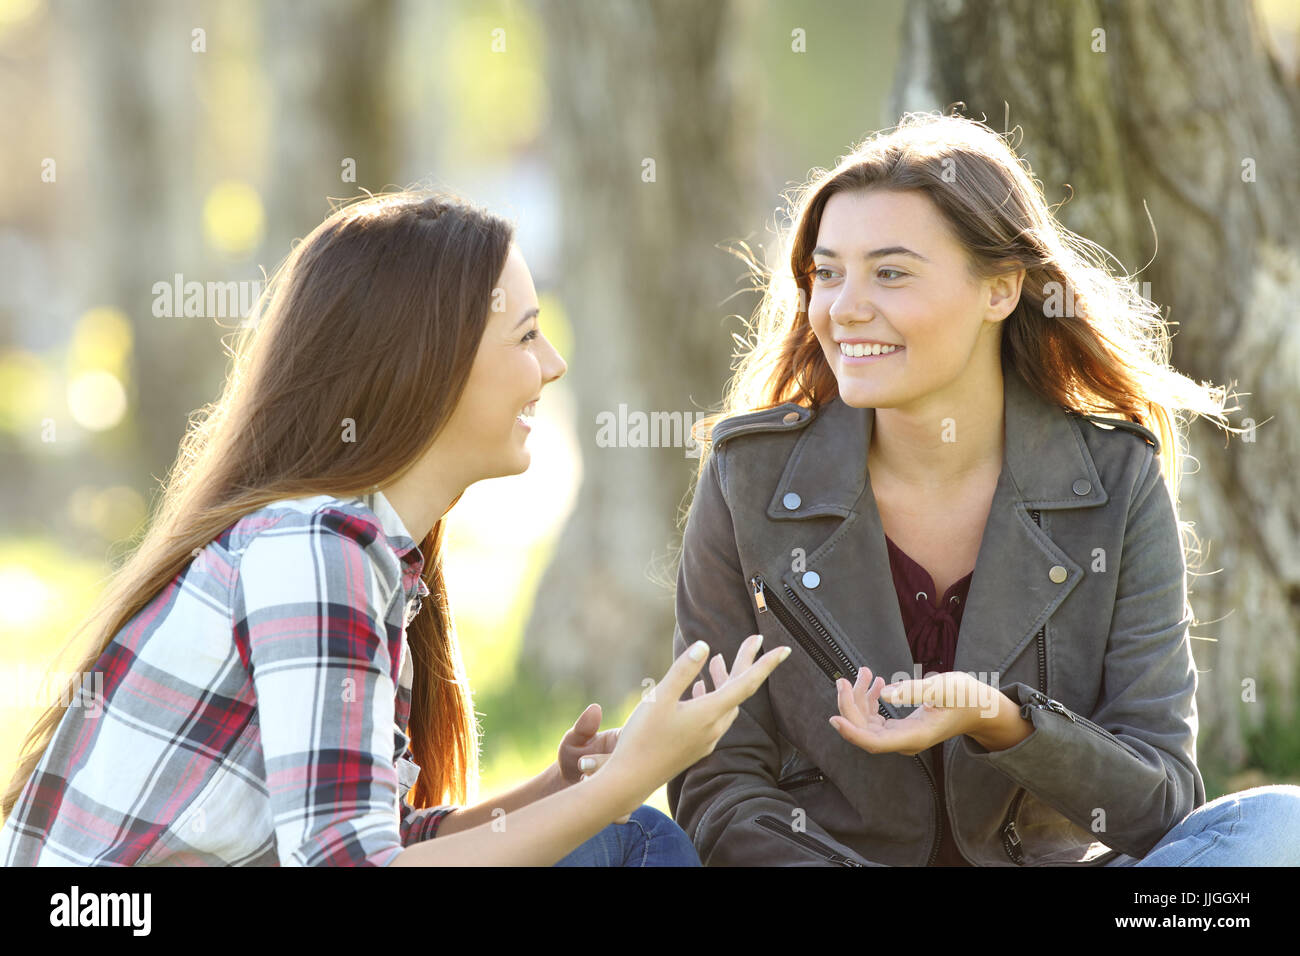 Two friends talking and laughing sitting on the grass in a park - Stock Image